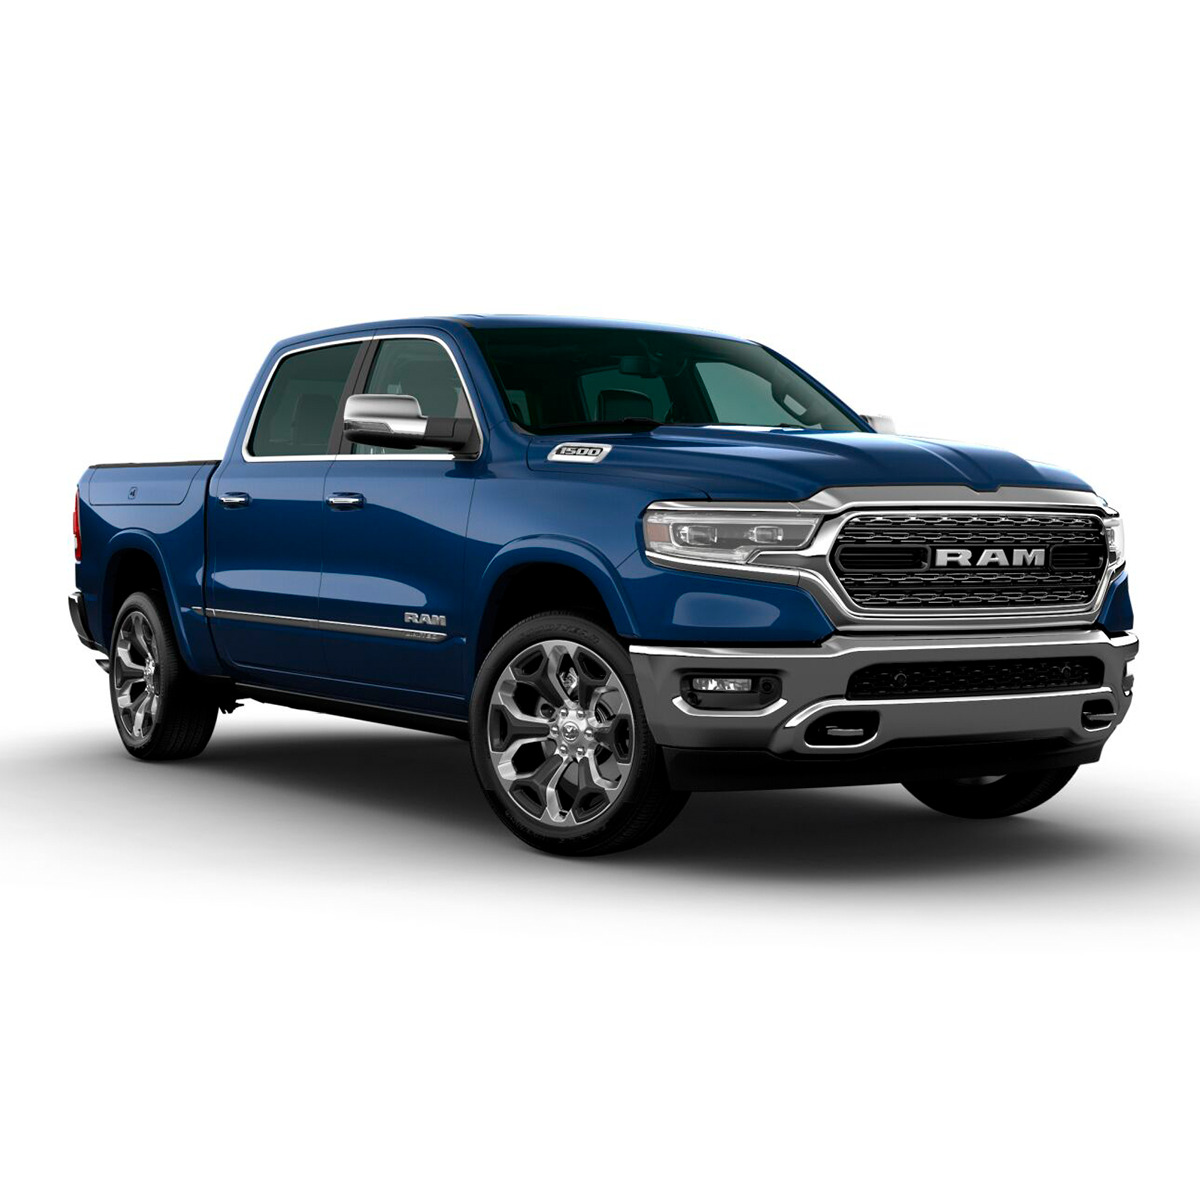 Ram 1500 LIMITED CREW CAB 4X4 5.7L AT